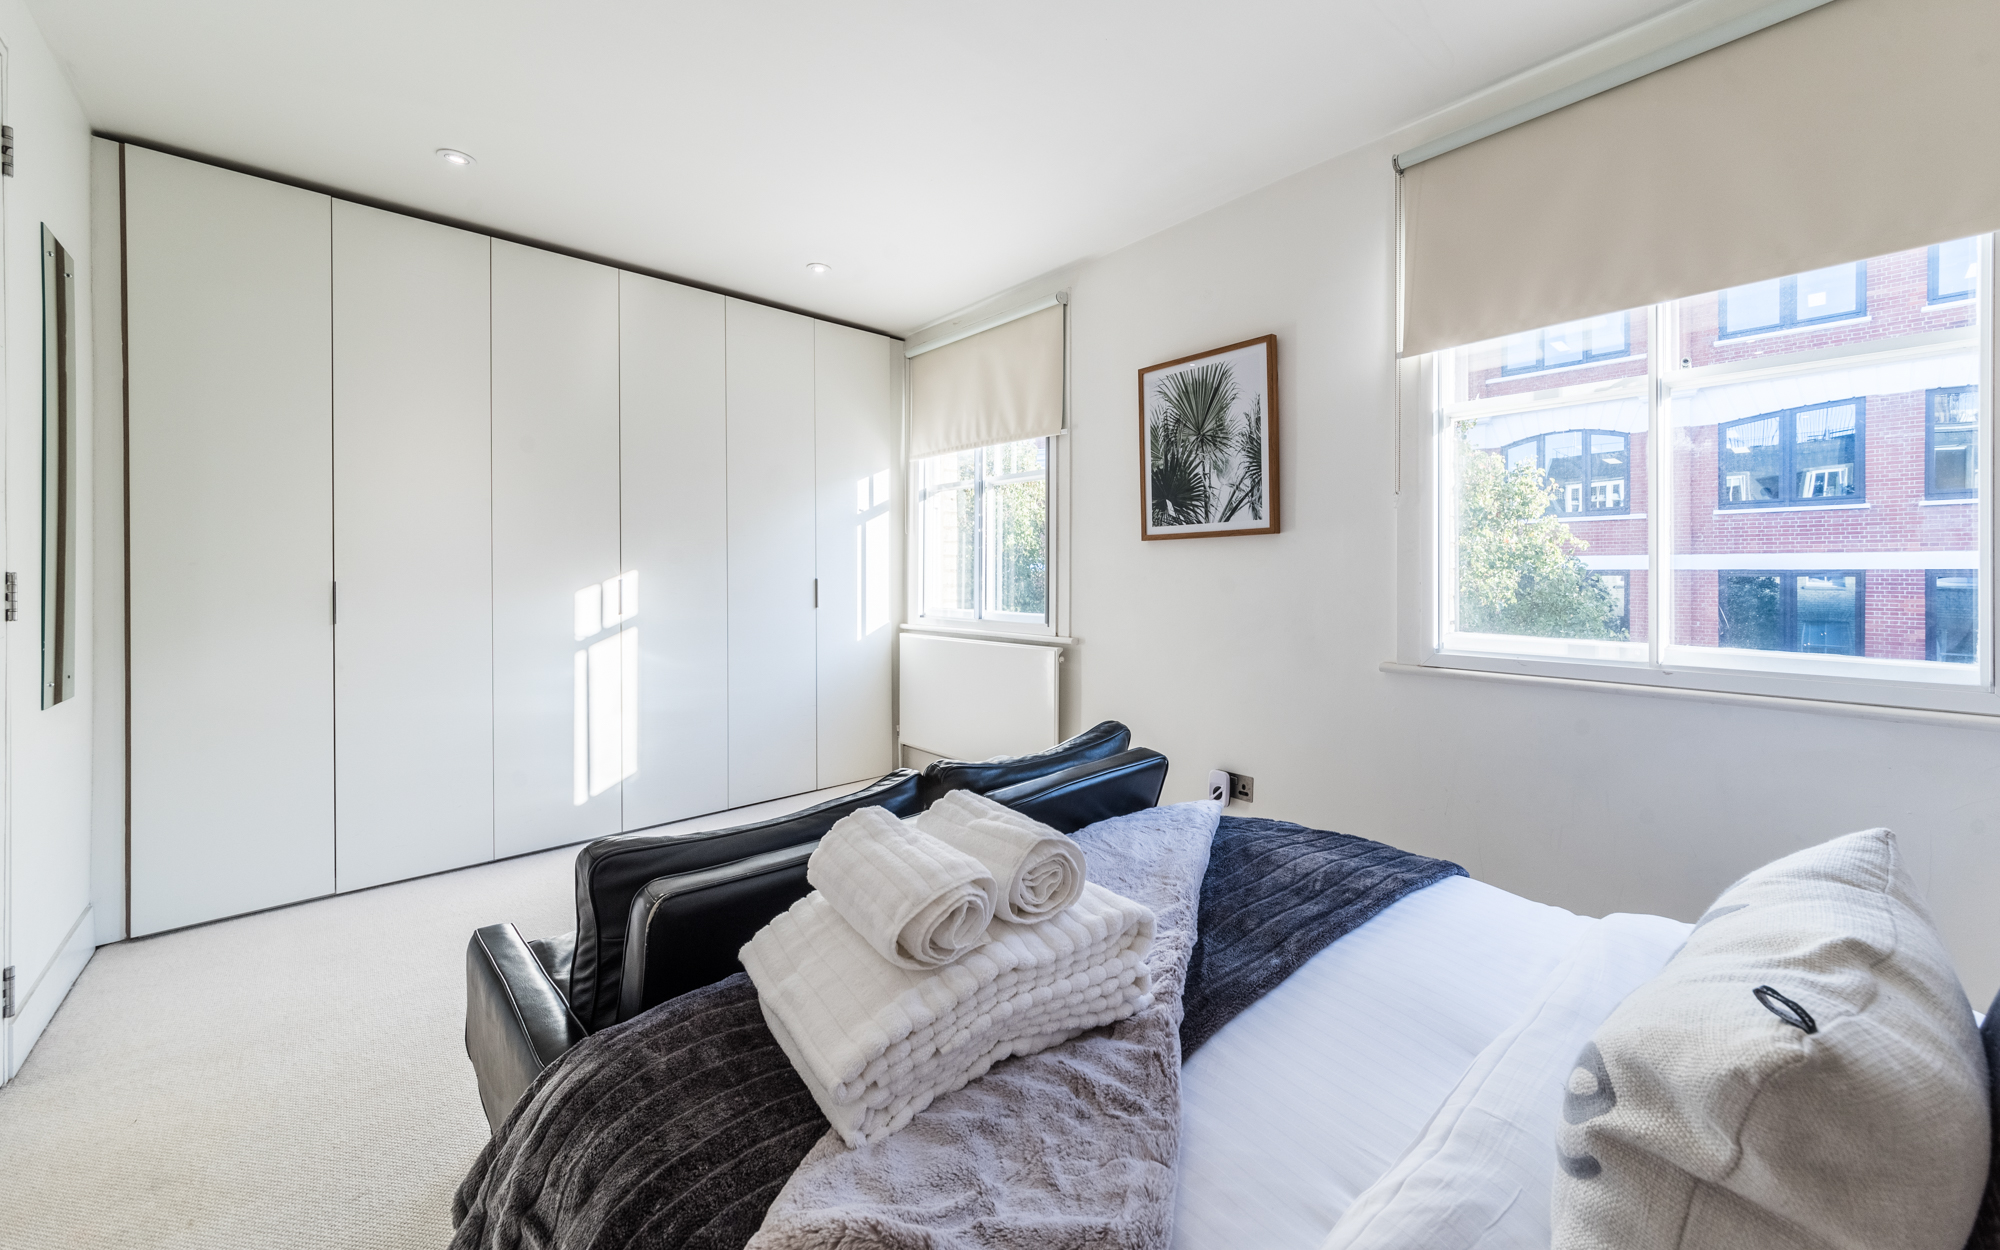 Lovelydays luxury service apartment rental - London - Fitzrovia - Foley Street II - Lovelysuite - 2 bedrooms - 2 bathrooms - Double bed - 4a1f65af6c58 - Lovelydays